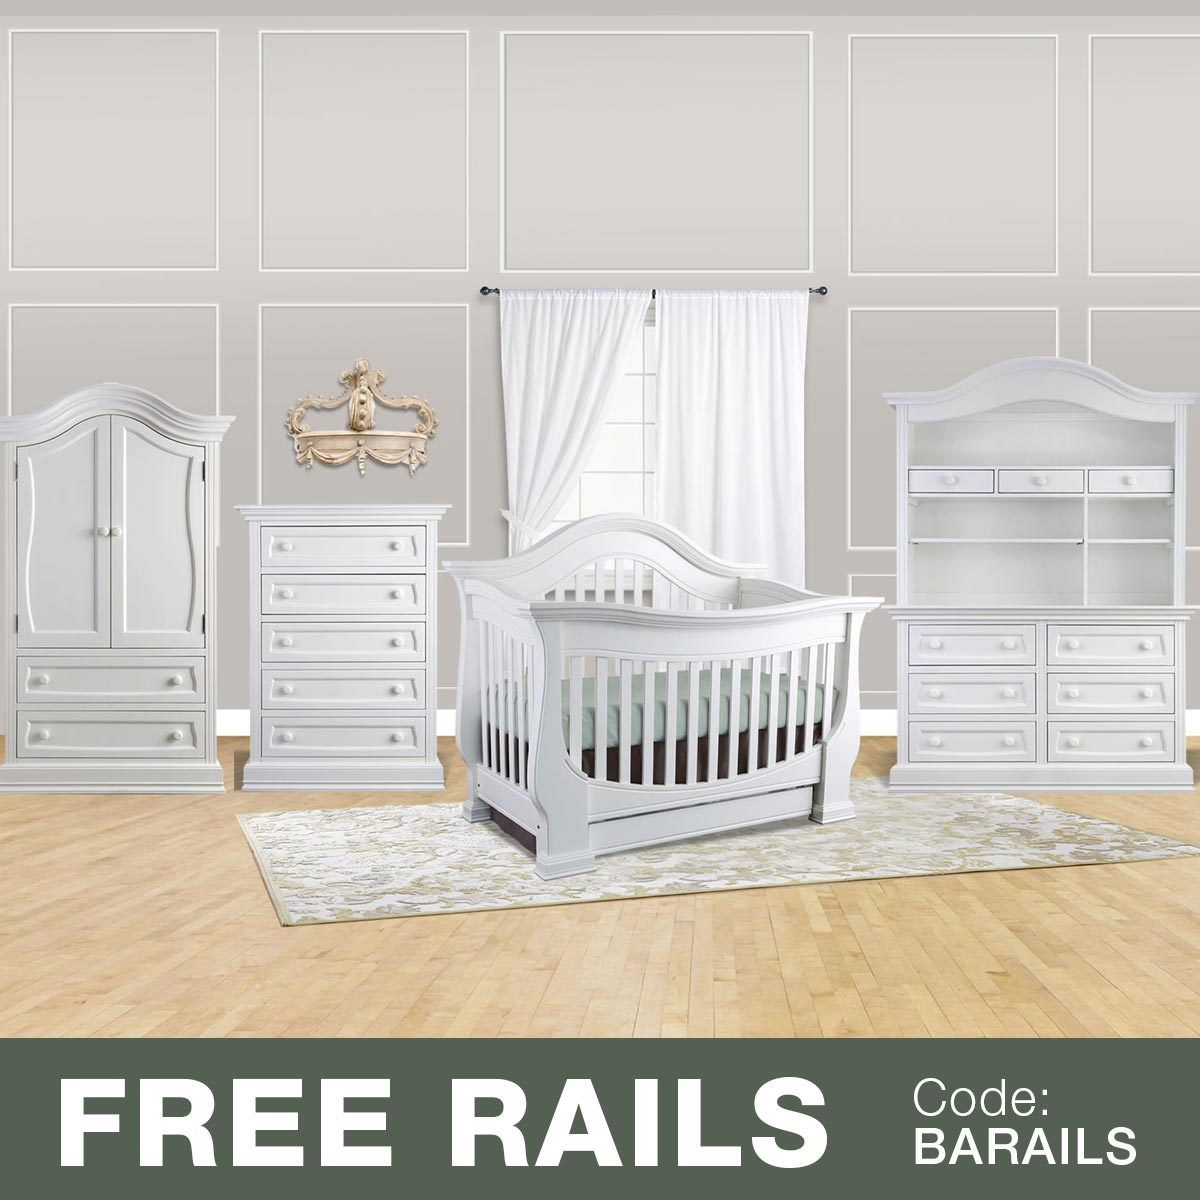 Baby Leseed Davenport 5 Piece Nursery Set 3 In 1 Convertible Crib Double Dresser With Hutch Drawer Tall And Armoire Pure White